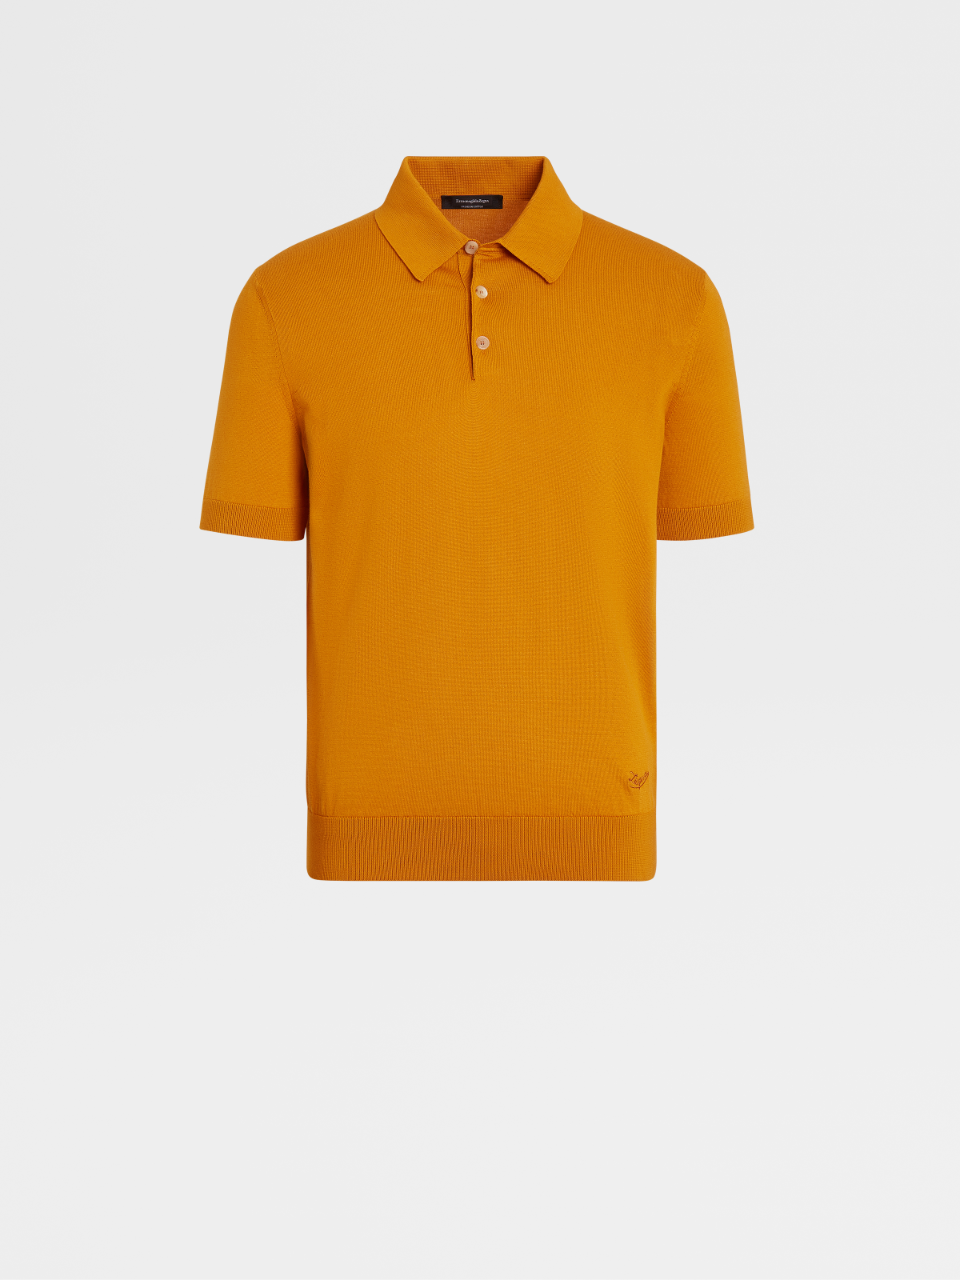 Premium Cotton Knit Short-Sleeve Polo